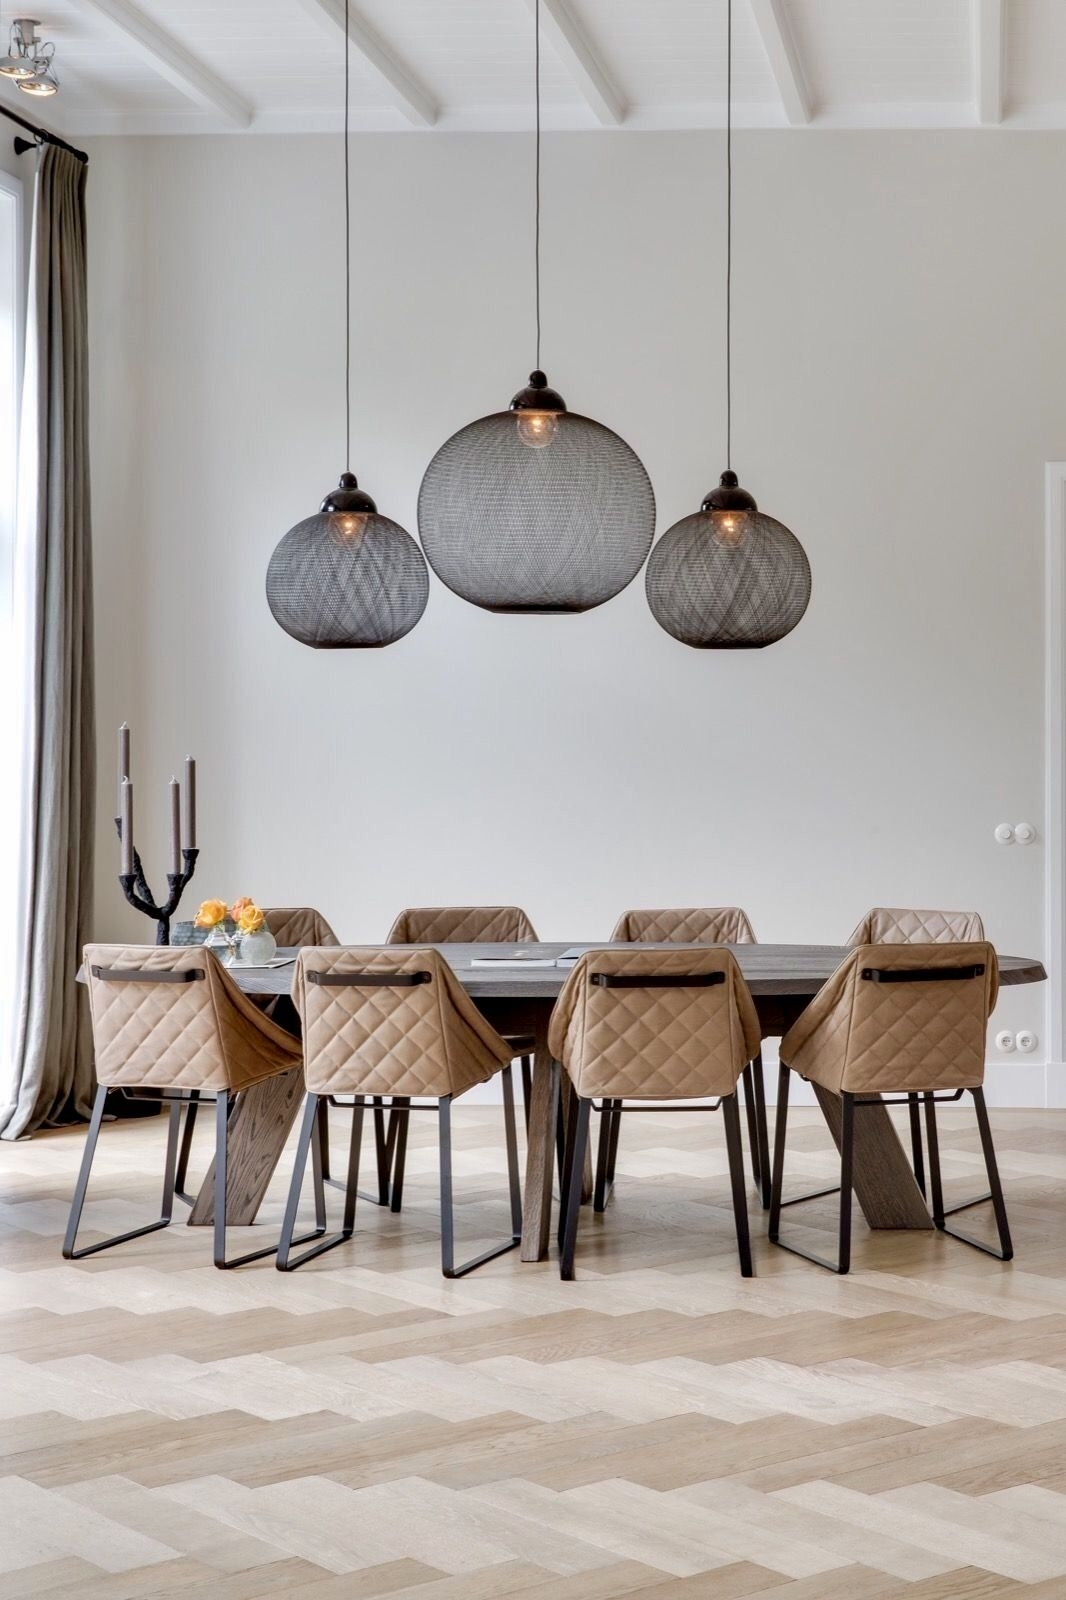 22 Best Ideas Of Pendant Lighting For Kitchen, Dining Room And In Latest Bale Rustic Grey Dining Tables (Image 1 of 20)